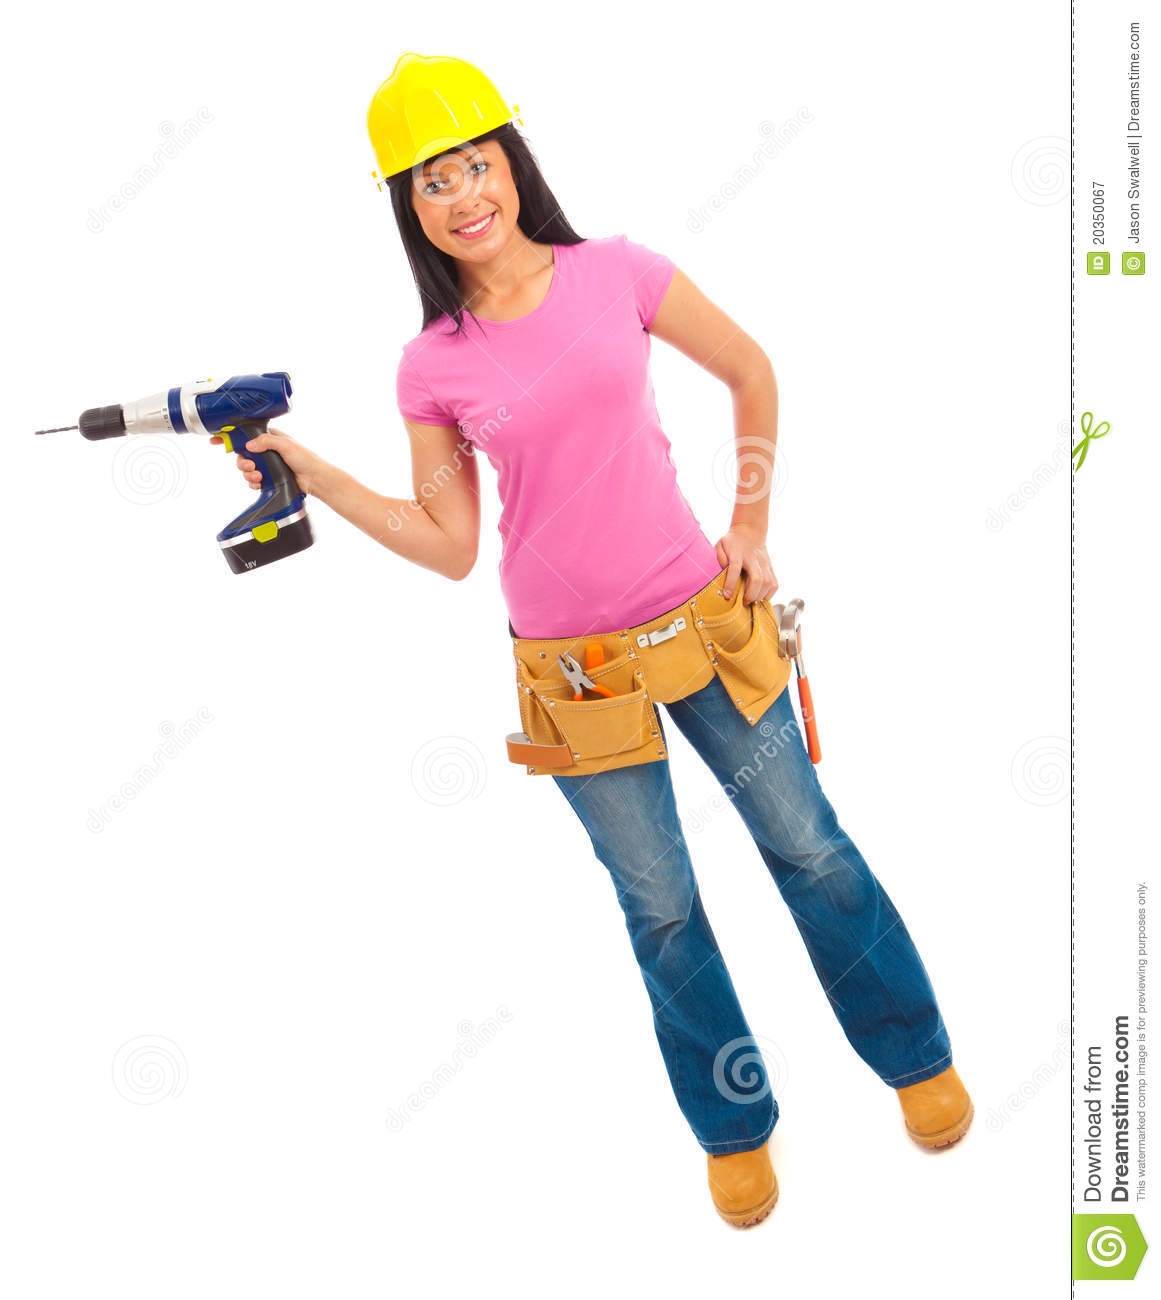 Home improvements royalty free stock photography image for A to z home improvements